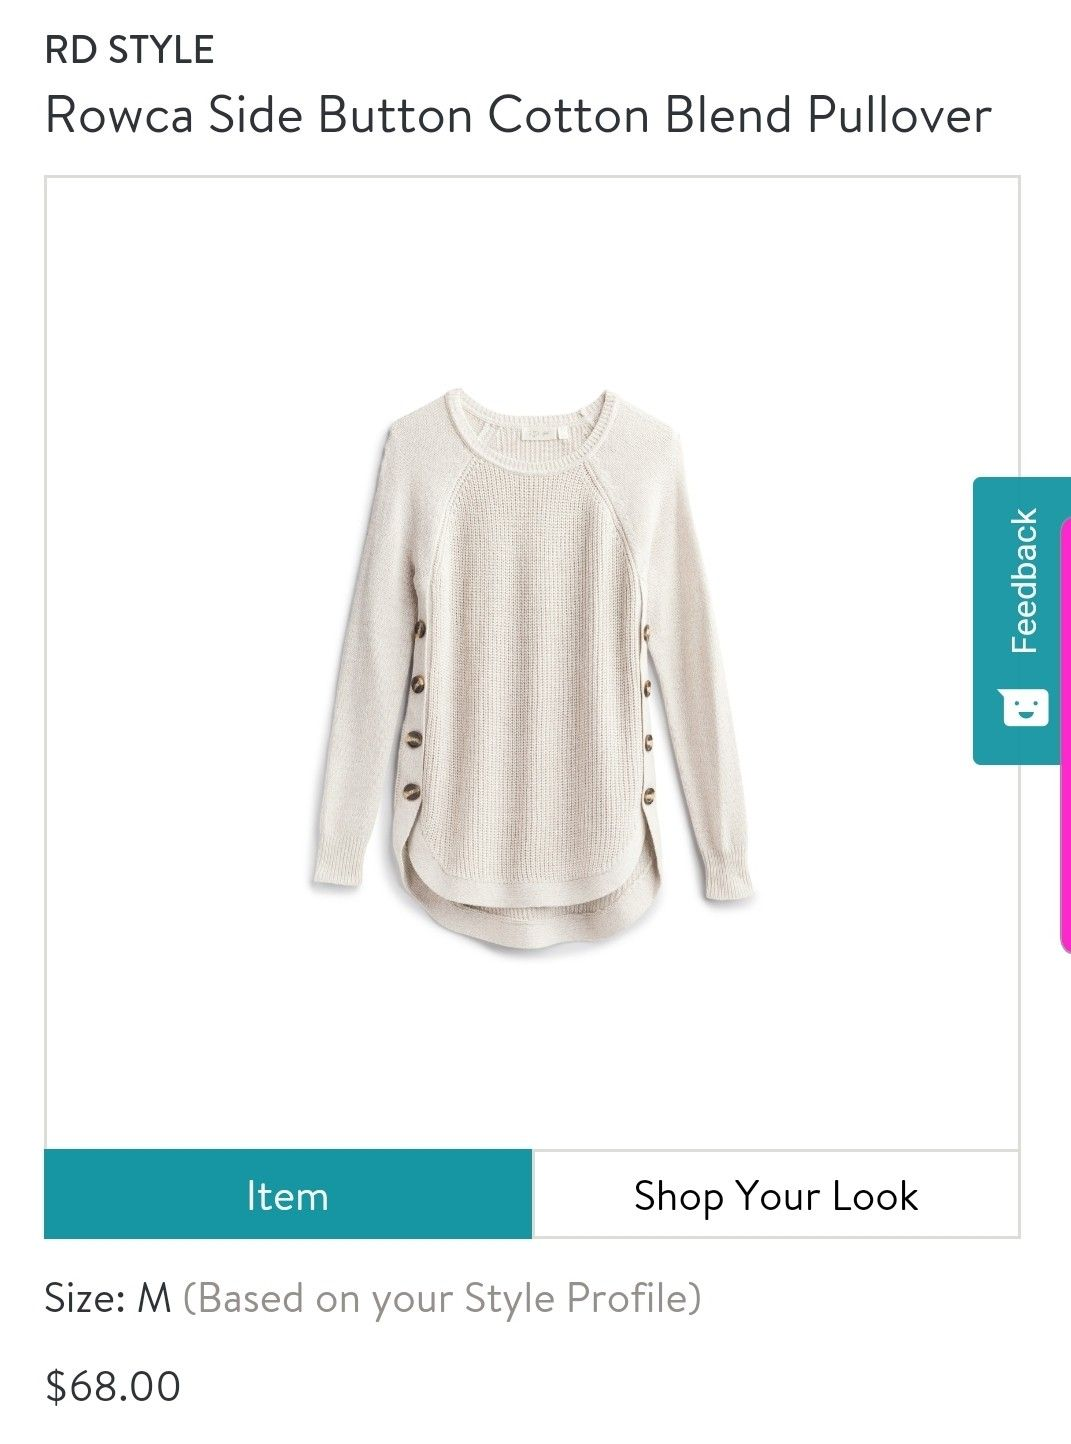 Stitch Fix Stylist Love The Button Detail And Length